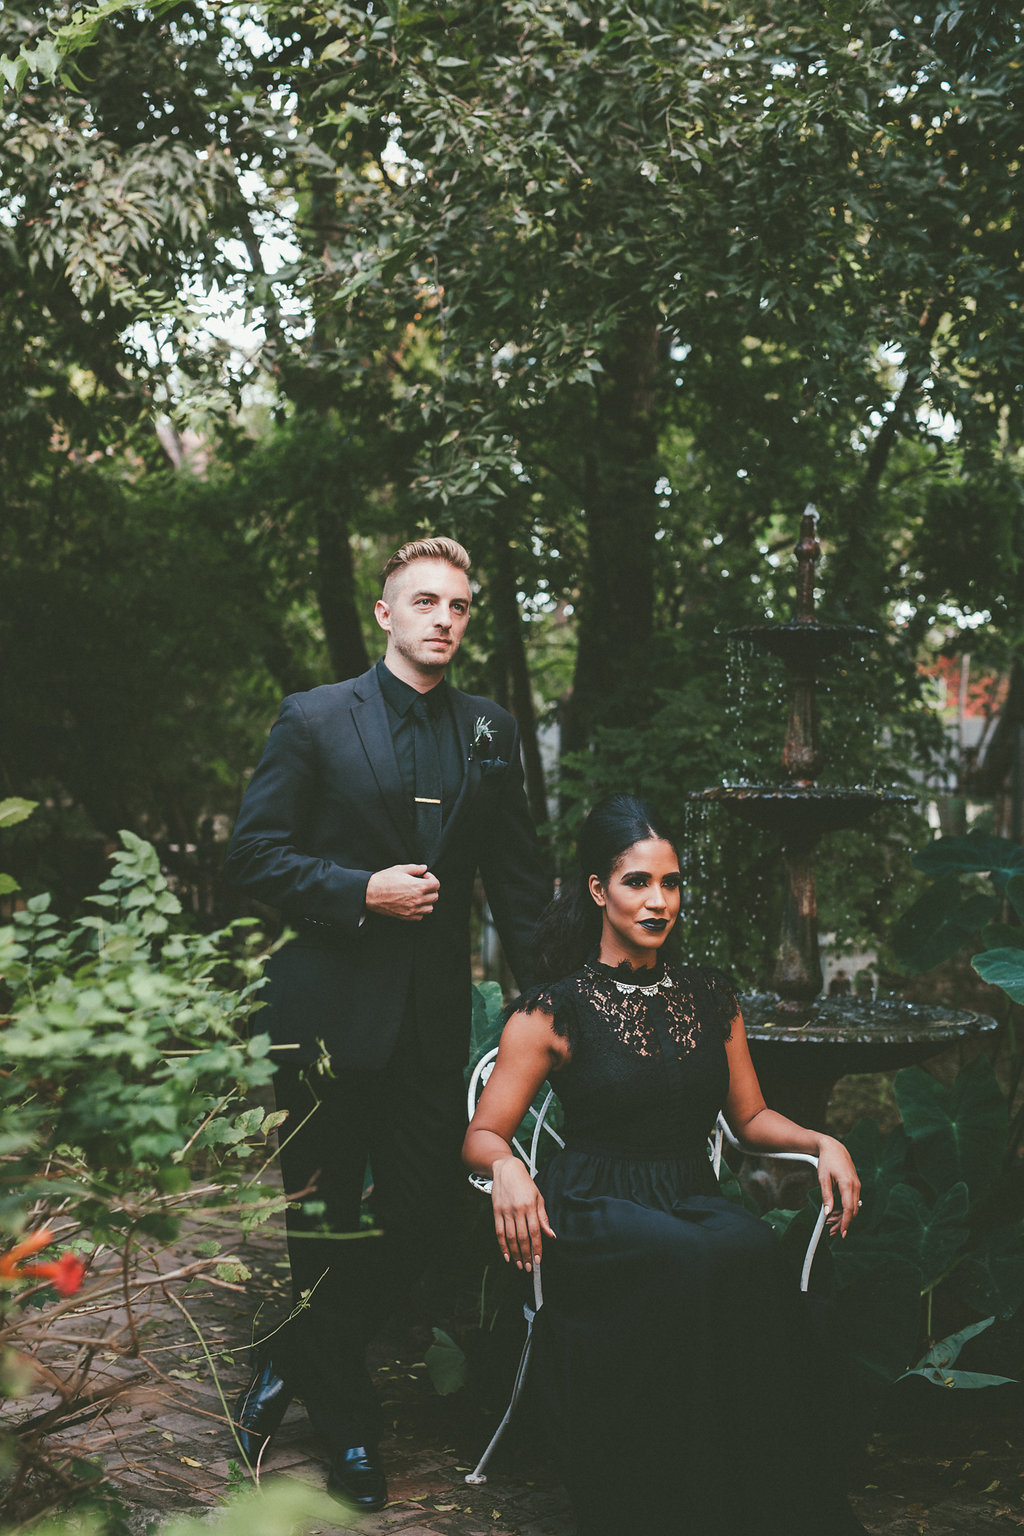 Diana Ascarrunz & Shaun Delgado-Harris Moody New Orleans Witchy Shoot